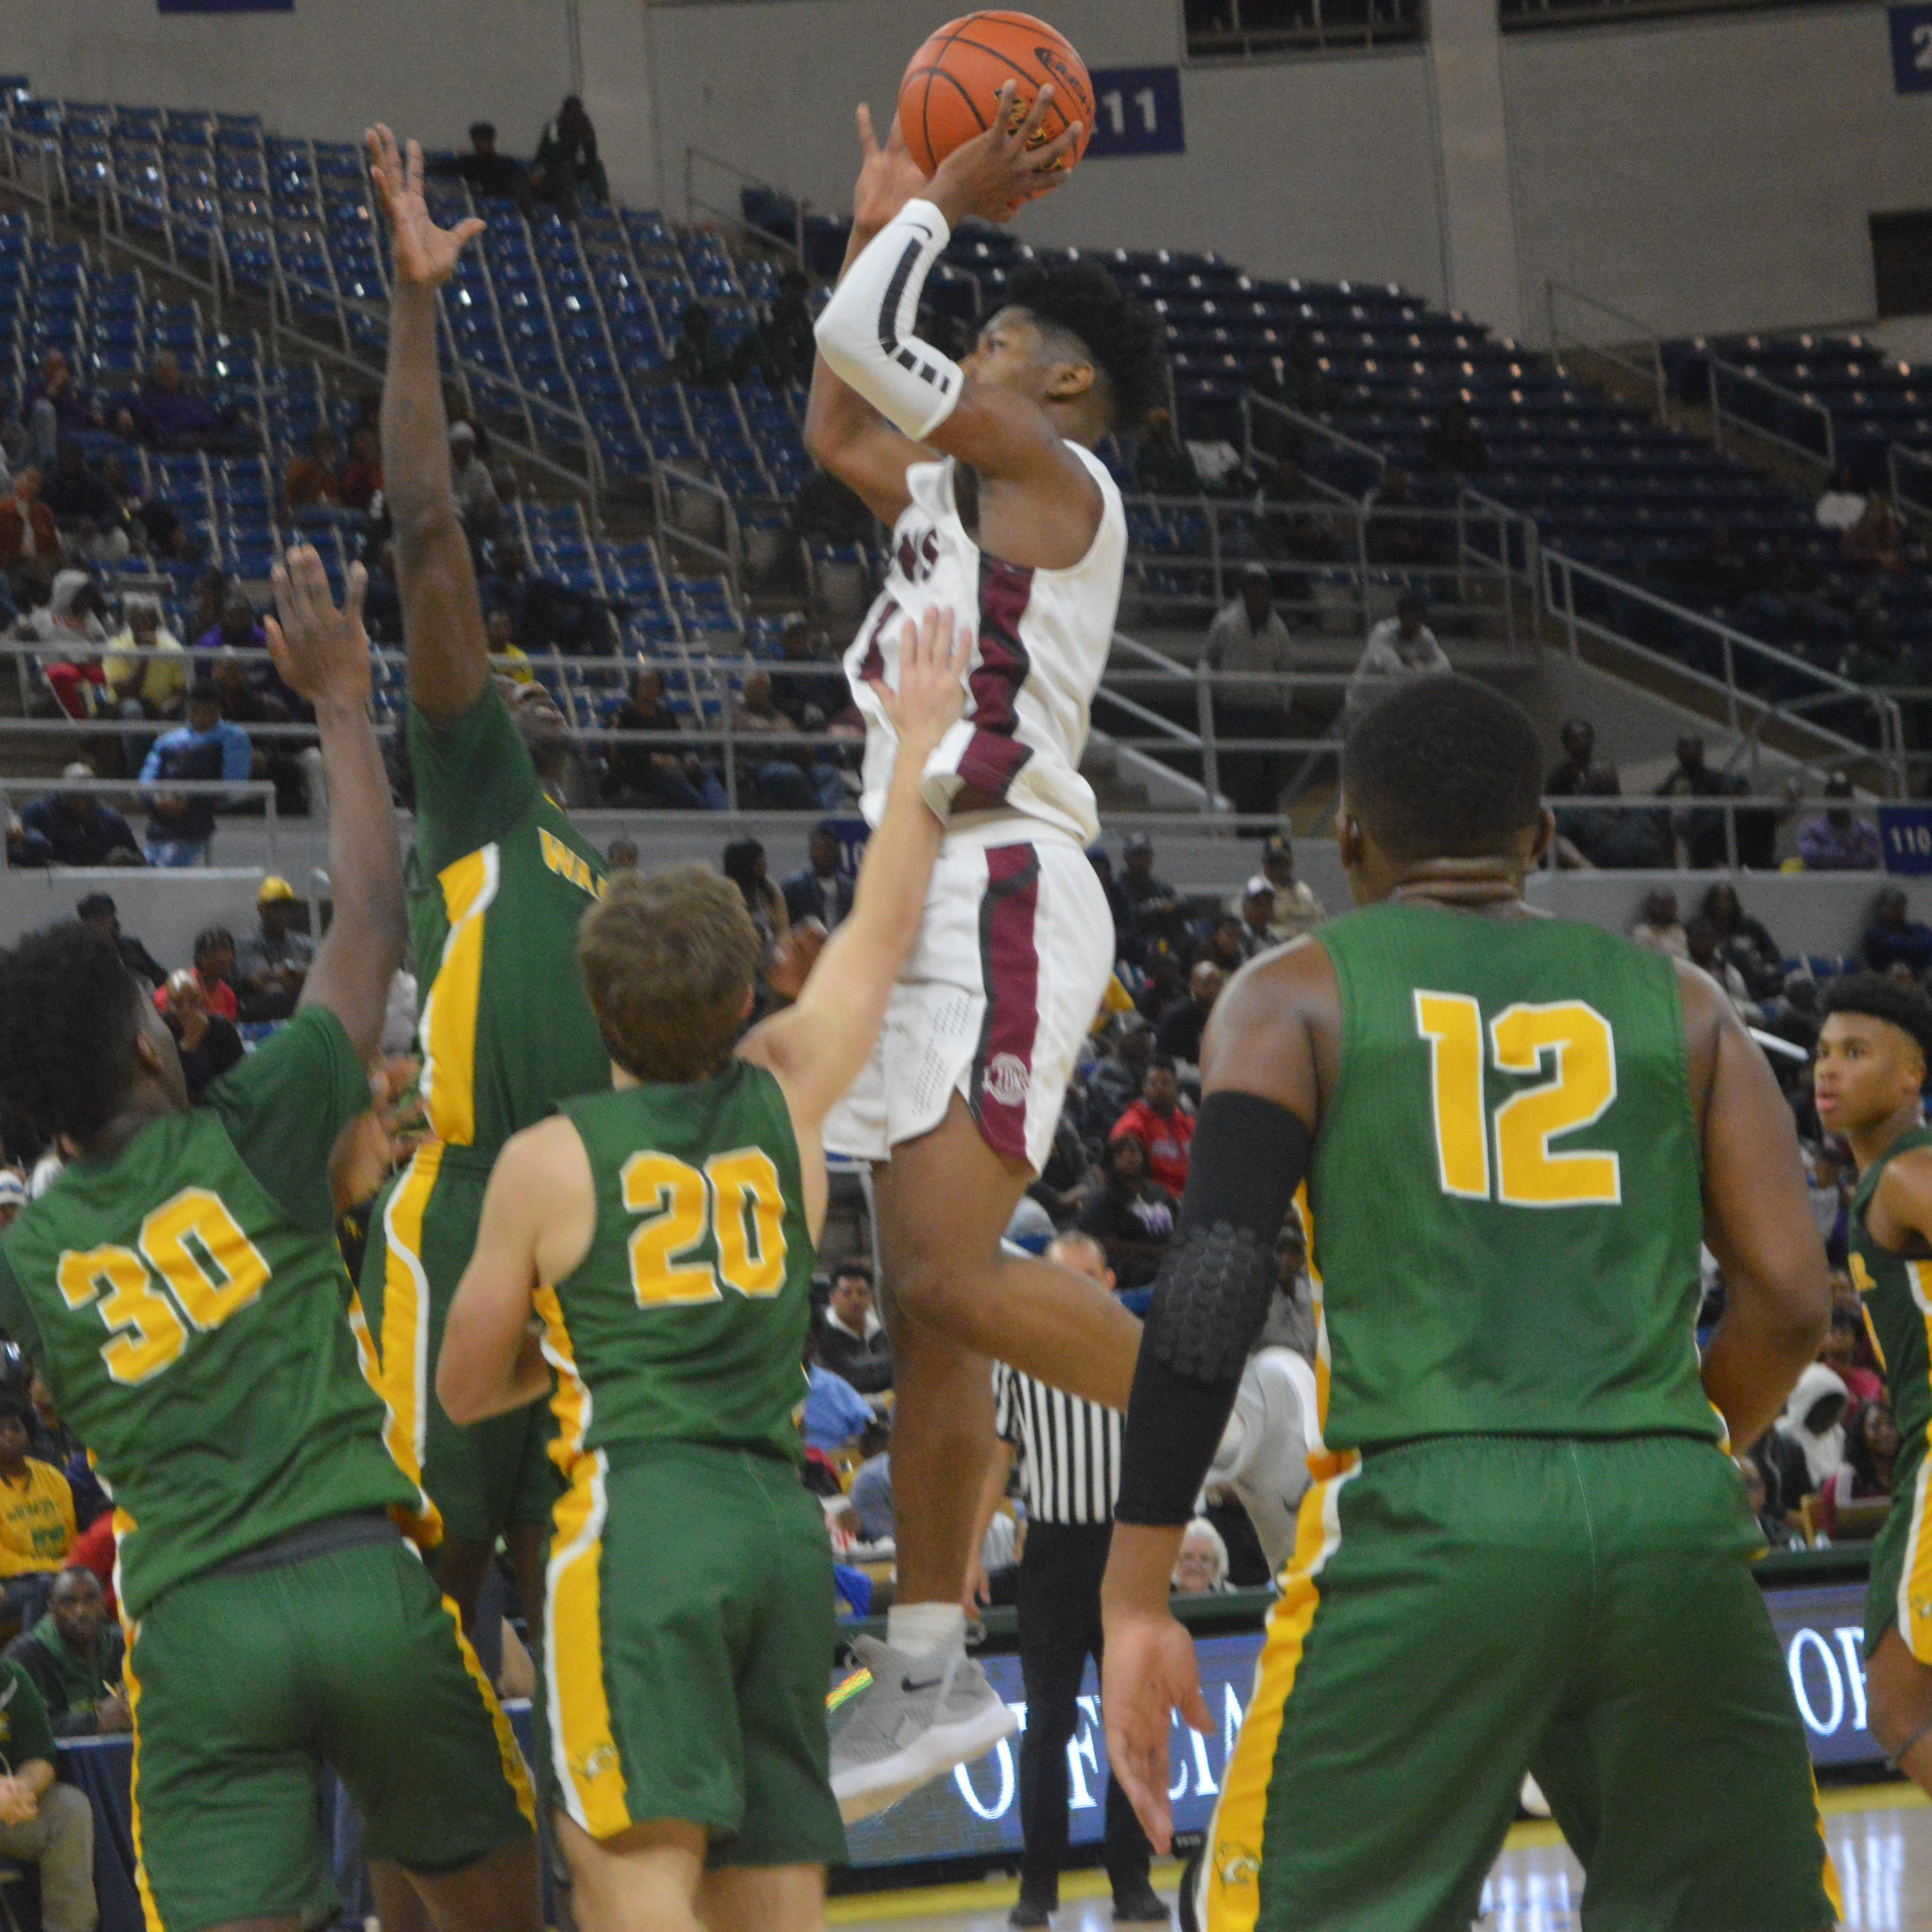 Cook cooks as Ouachita loses lead to Walker in 5A semis